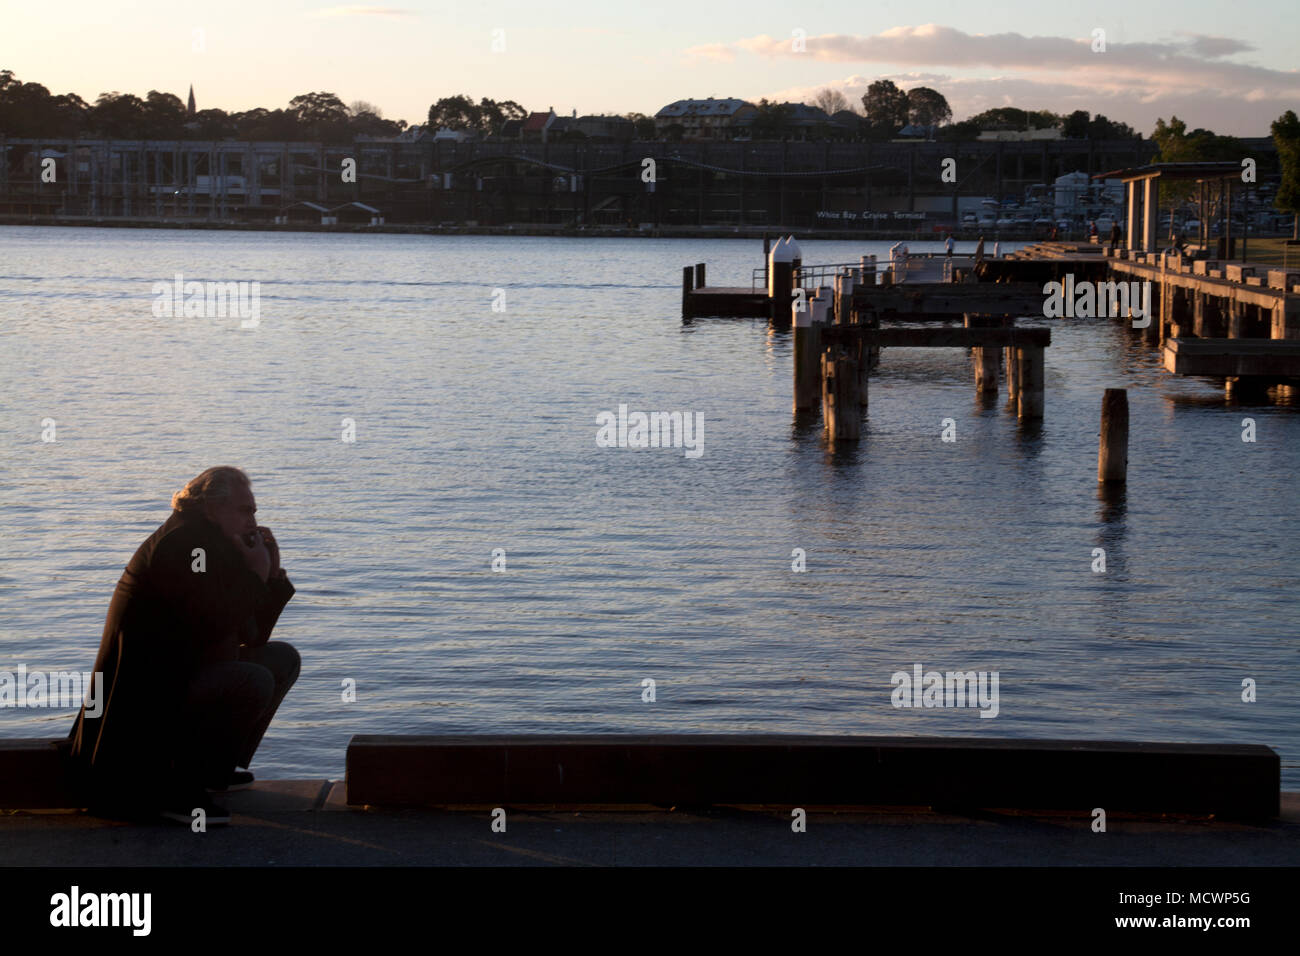 man squatting at sunset jones bay pyrmont sydney new south wales australia - Stock Image